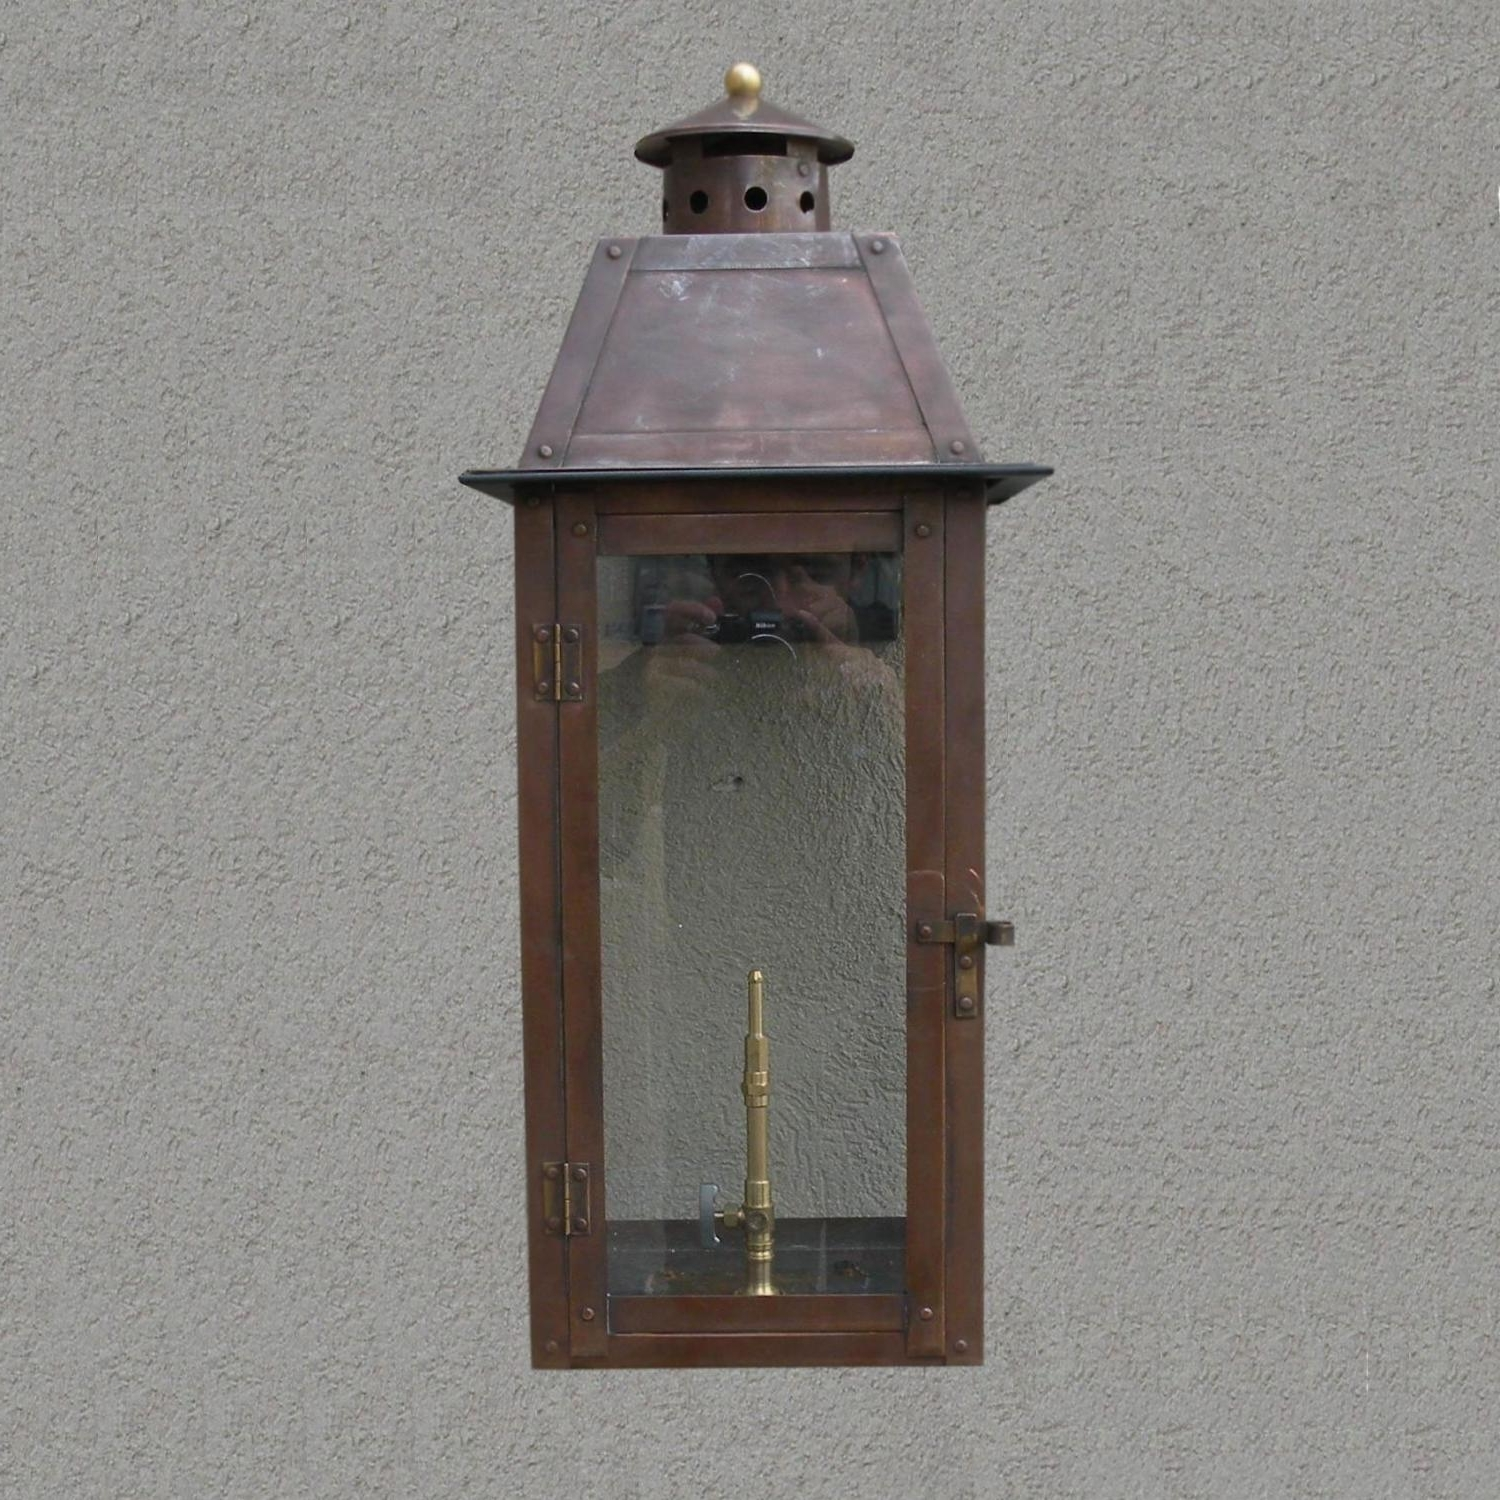 Regency Gl25 Monroe Rue Natural Gas Light With Open Flame Burner And Regarding Trendy Outdoor Gas Lanterns (View 17 of 20)